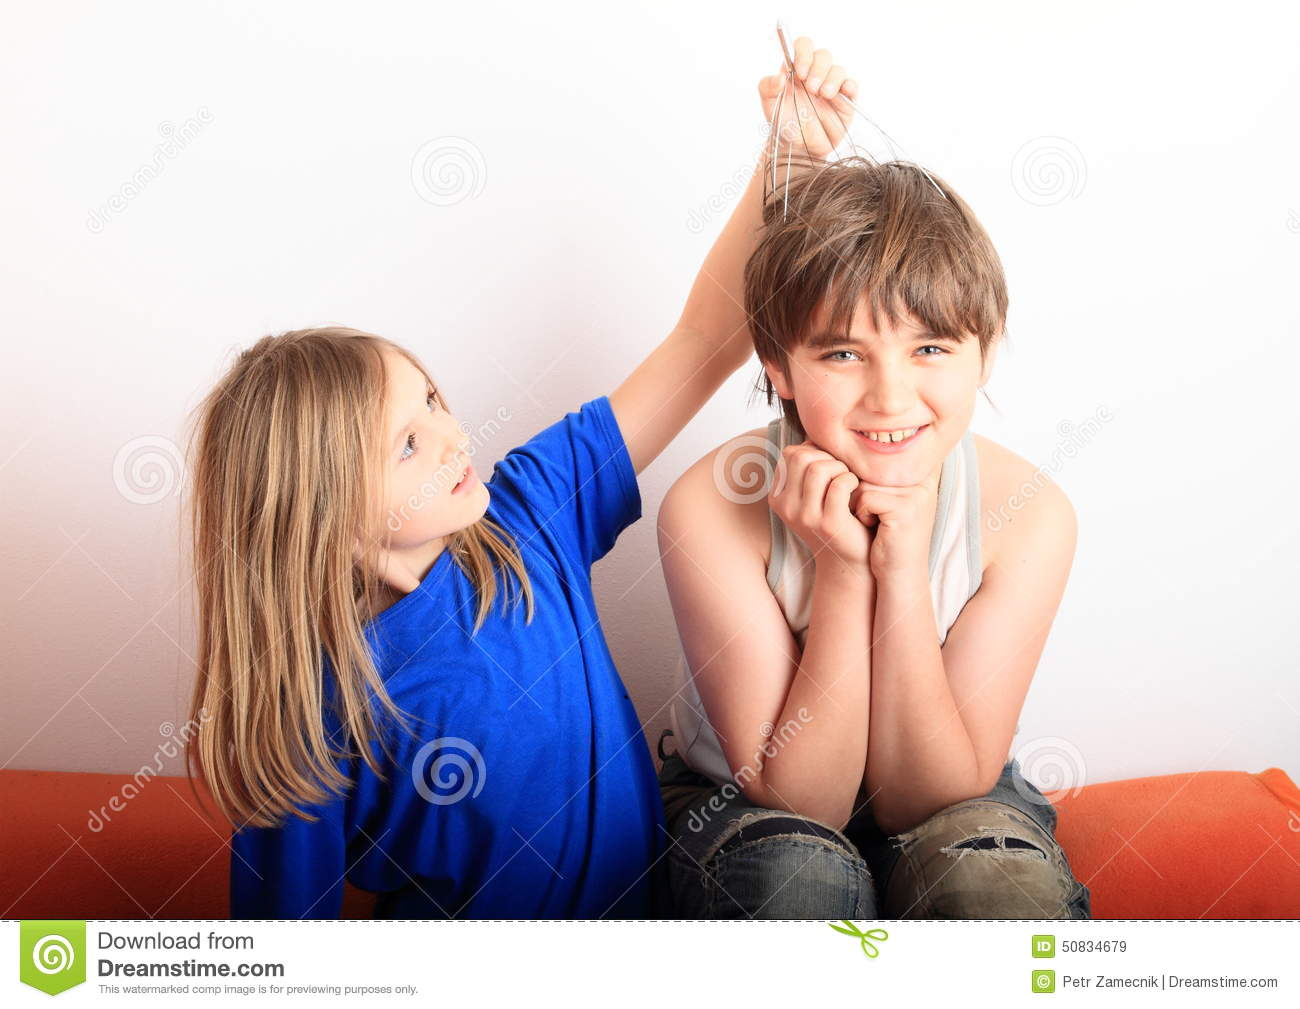 Girl Massage With Boy